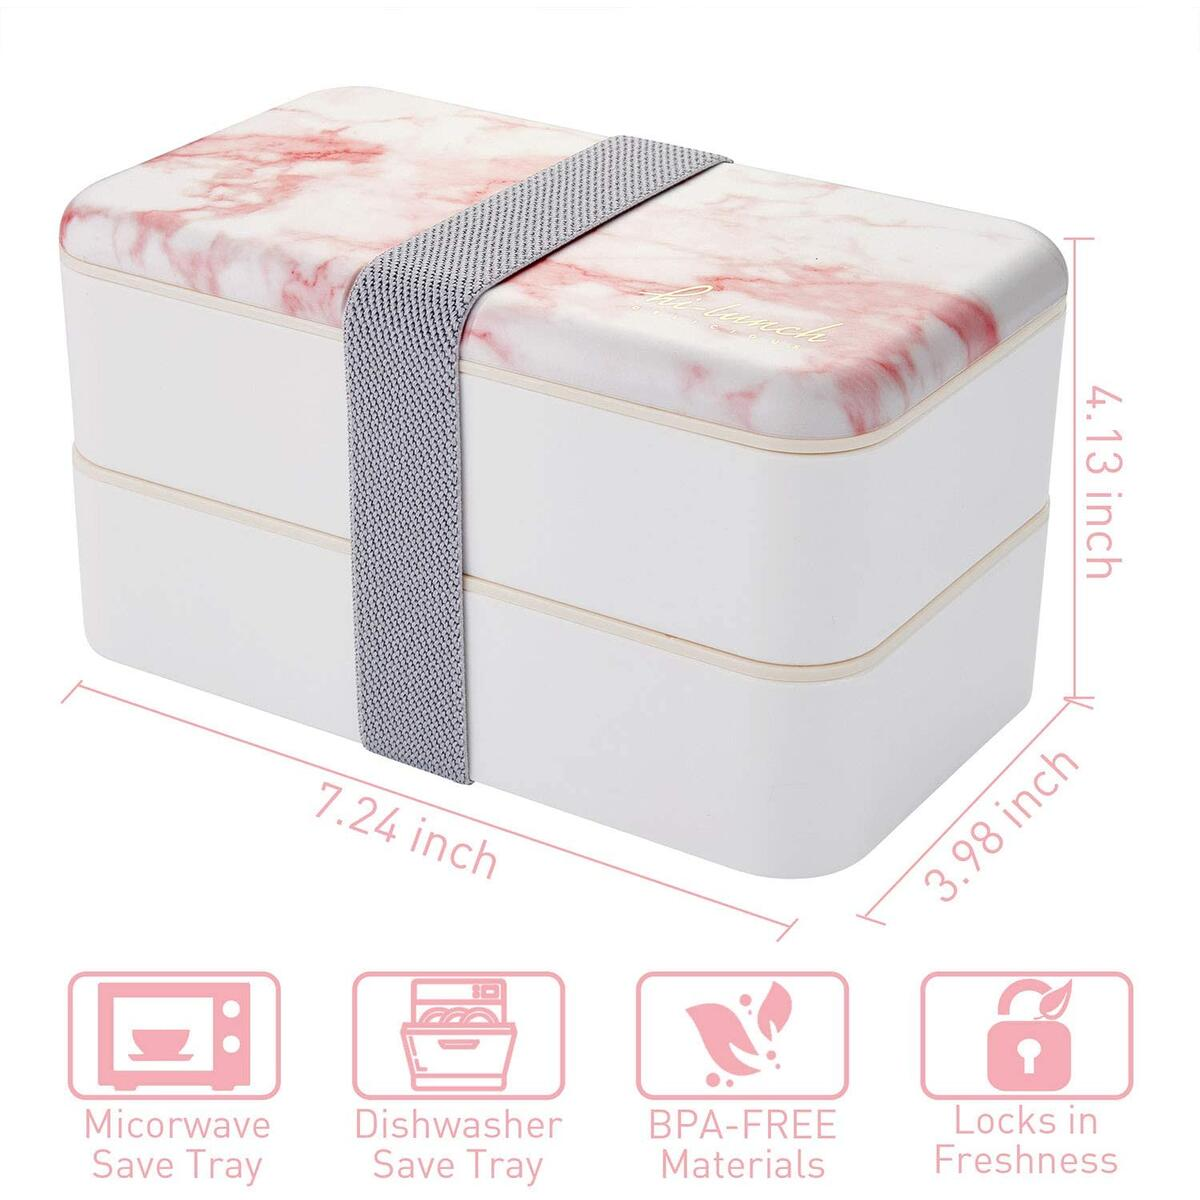 Japanese Bento Box, All-in-One Stackable Bento Lunch Box Container - Sleek and Modern Bento-Style Design Includes 2 Stackable Containers, Microwave and Dishwasher Safe, Easy Wash(Pink)